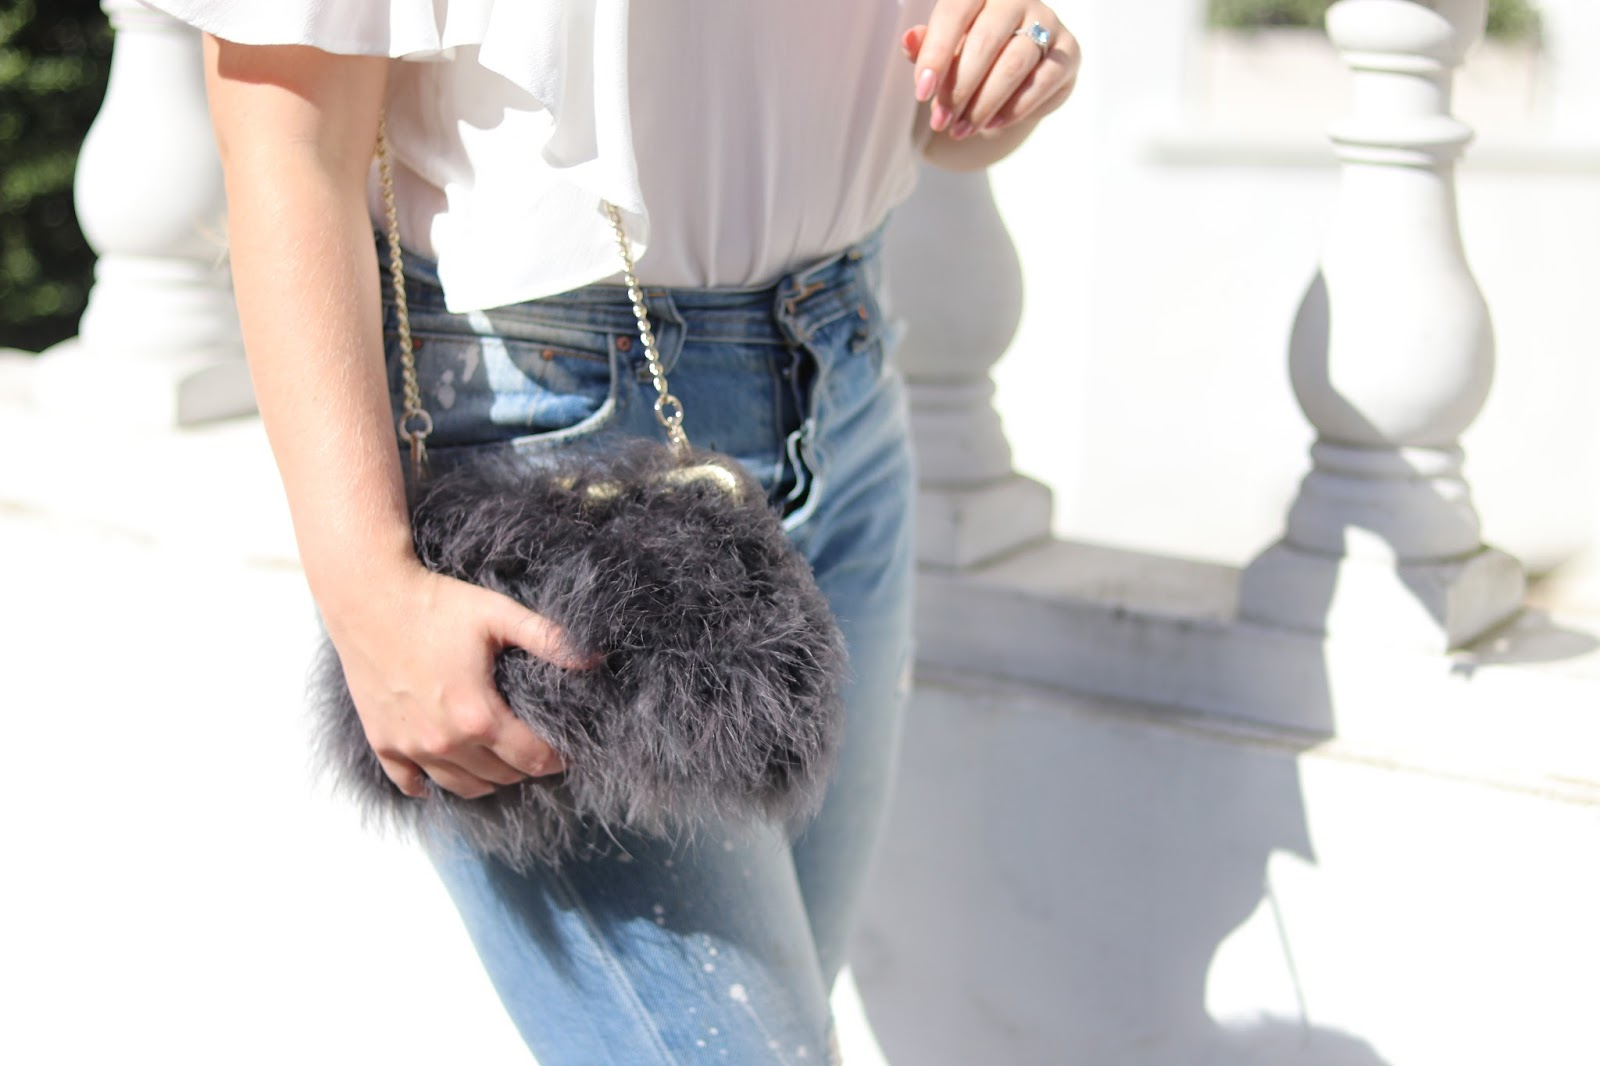 Blonde Girl, Katie Heath with Olaplex Haircare treatment, Hair by Dimitra, Michael John Salon, London, wearing Prada Sunglasses, Zara top and Jeans with Amelia Jane London Feather clutch bag